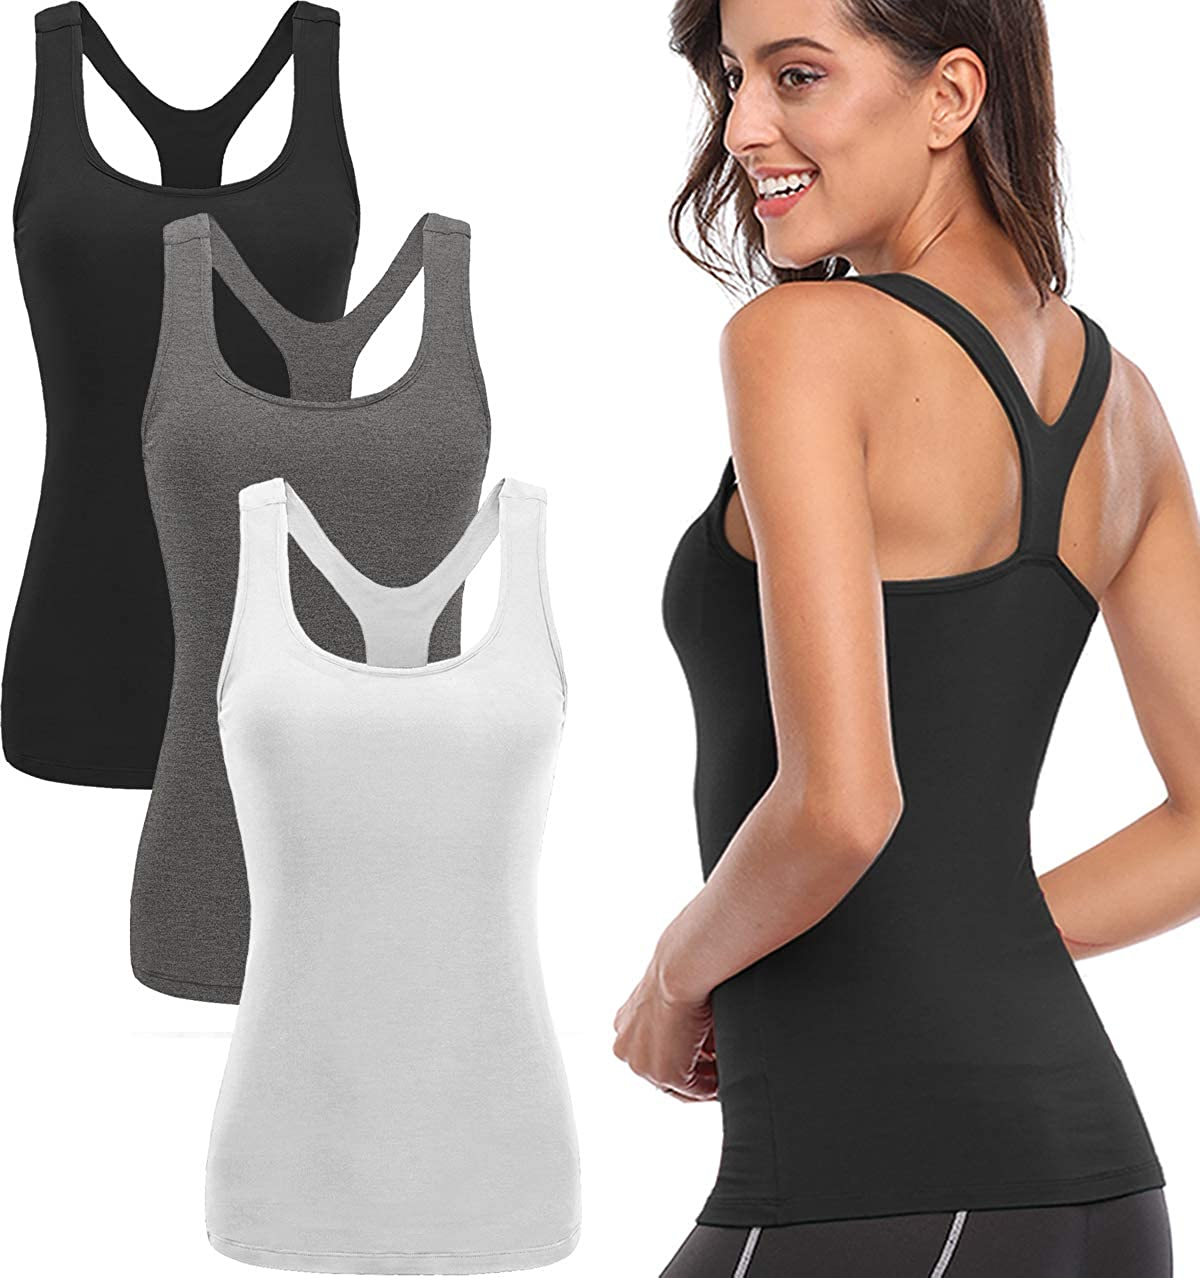 85faace67e9ea8 Amazon.com  TELALEO Tank Tops for Women